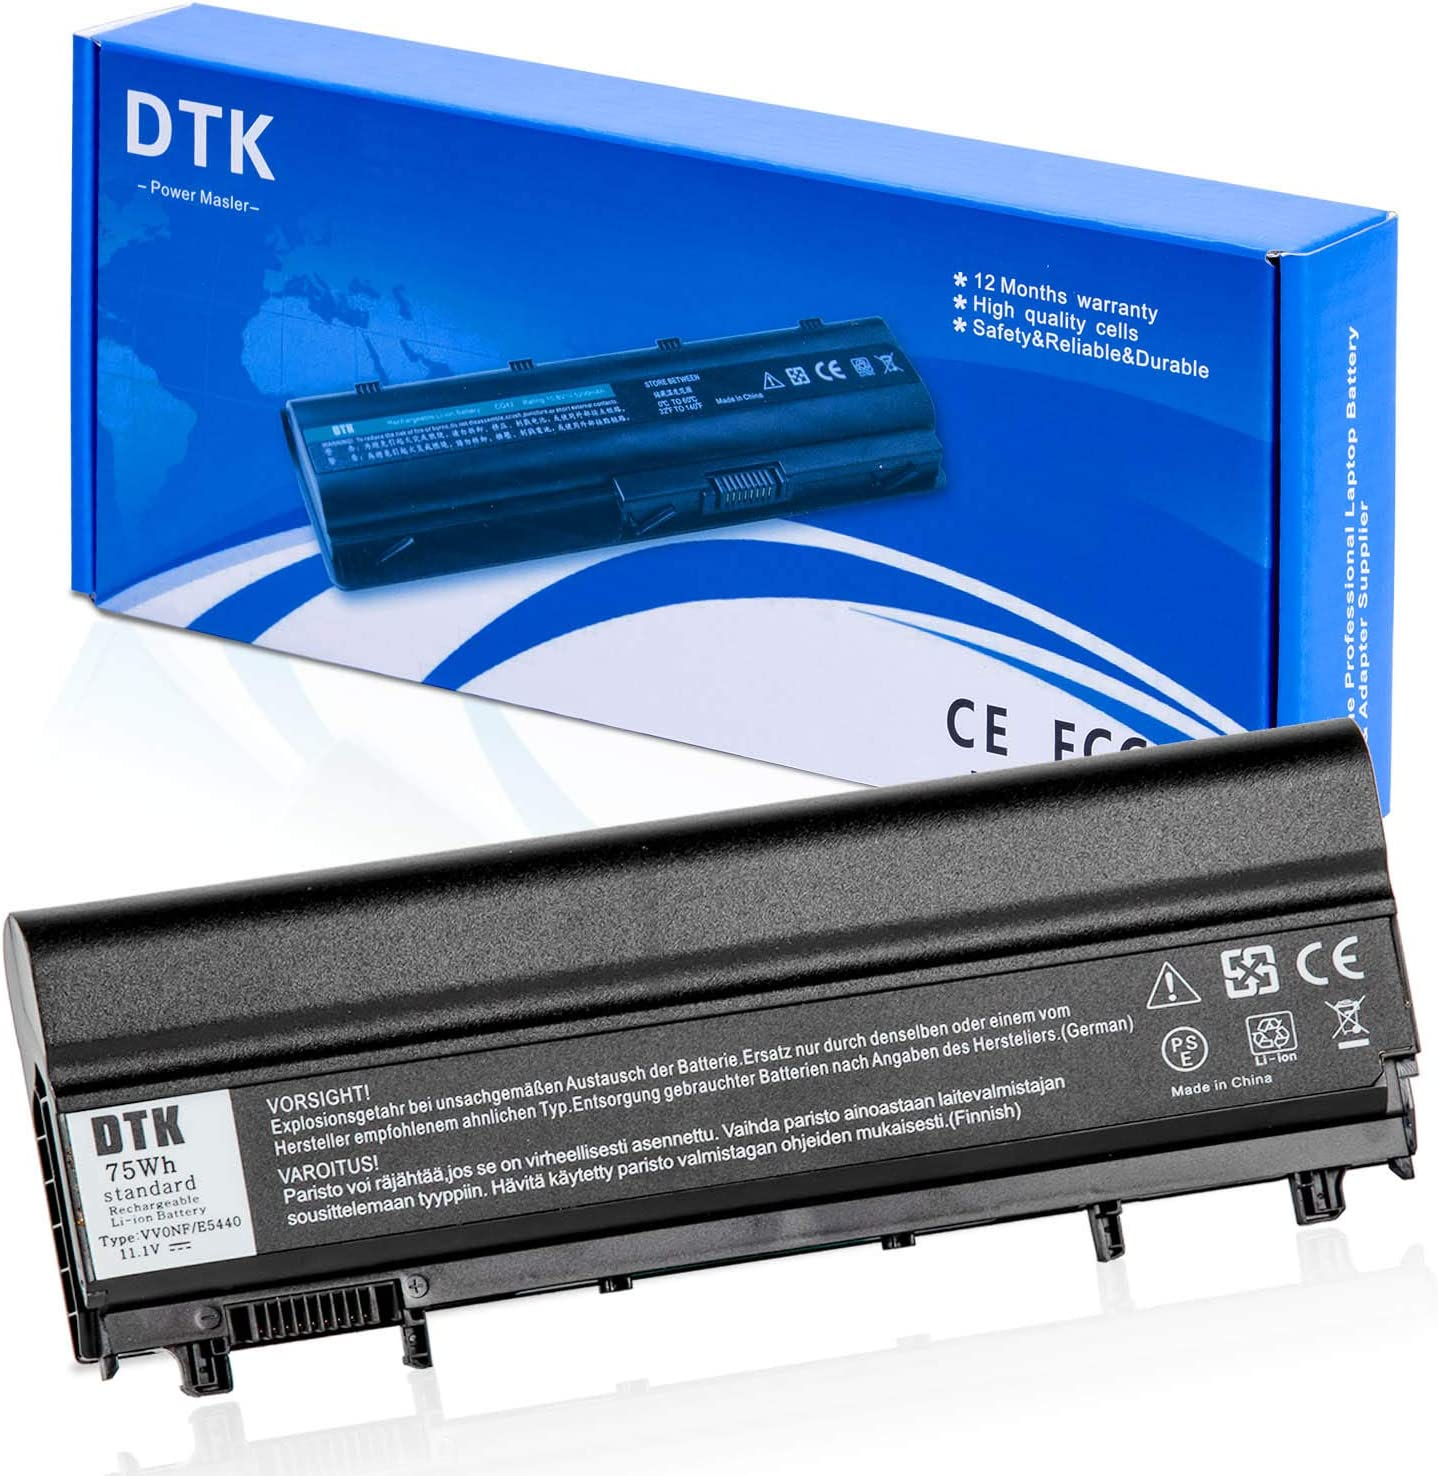 DTK 0M7T5F N5YH9 VV0NF New Laptop Battery Replacement for DELL Latitude E5440 E5540 Notebook 9-Cell 11.1V 6600MAH